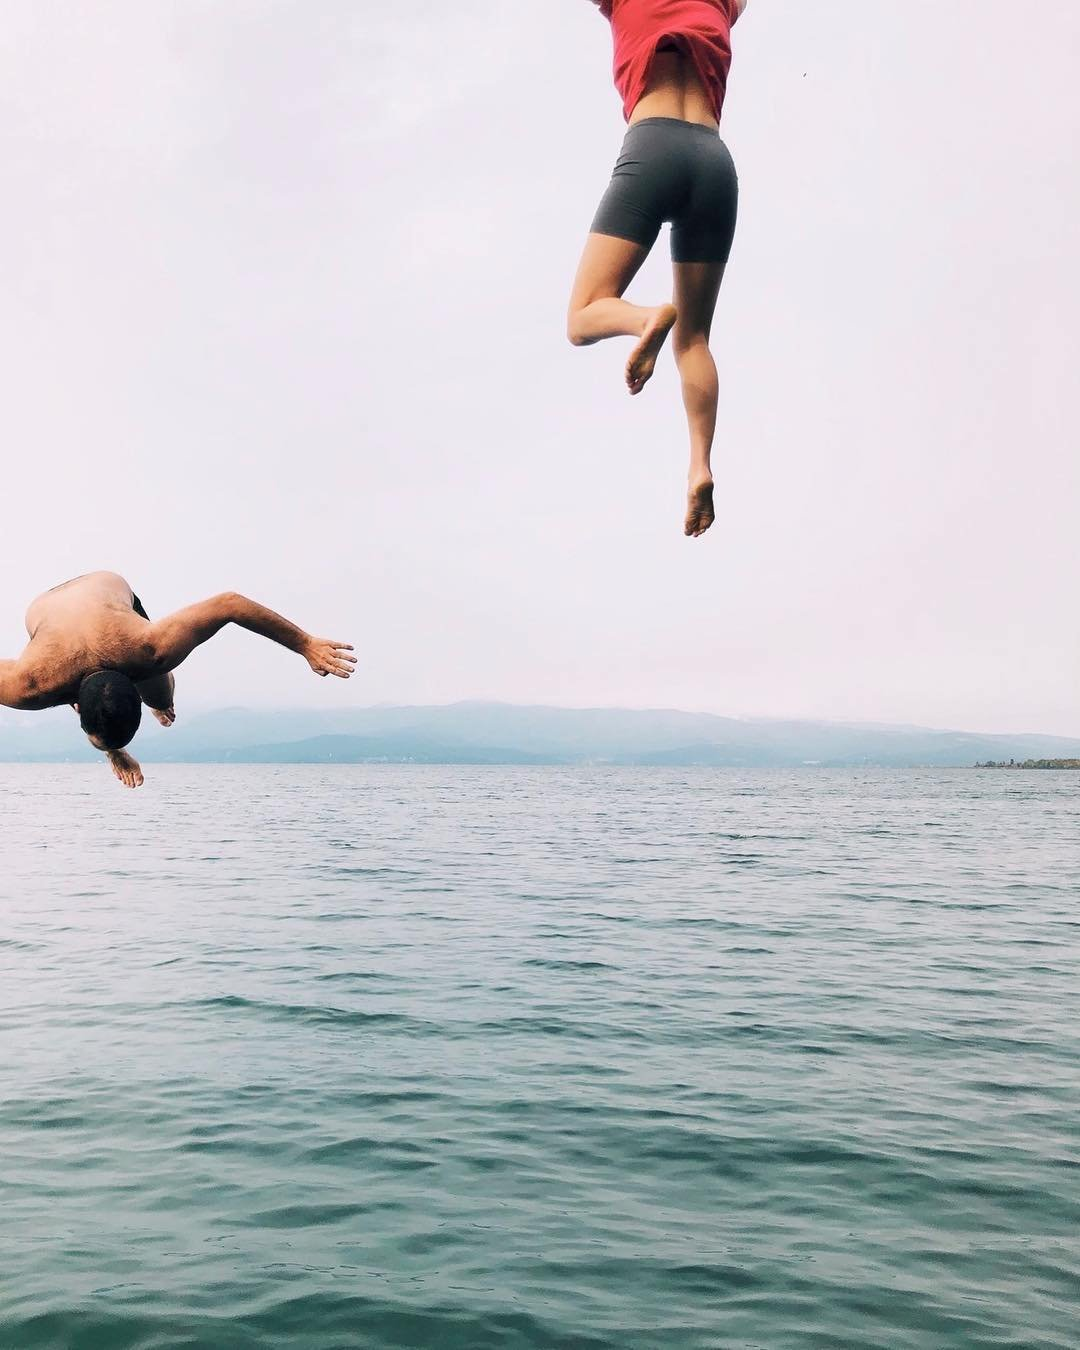 Lake jumping by Hailey Wist